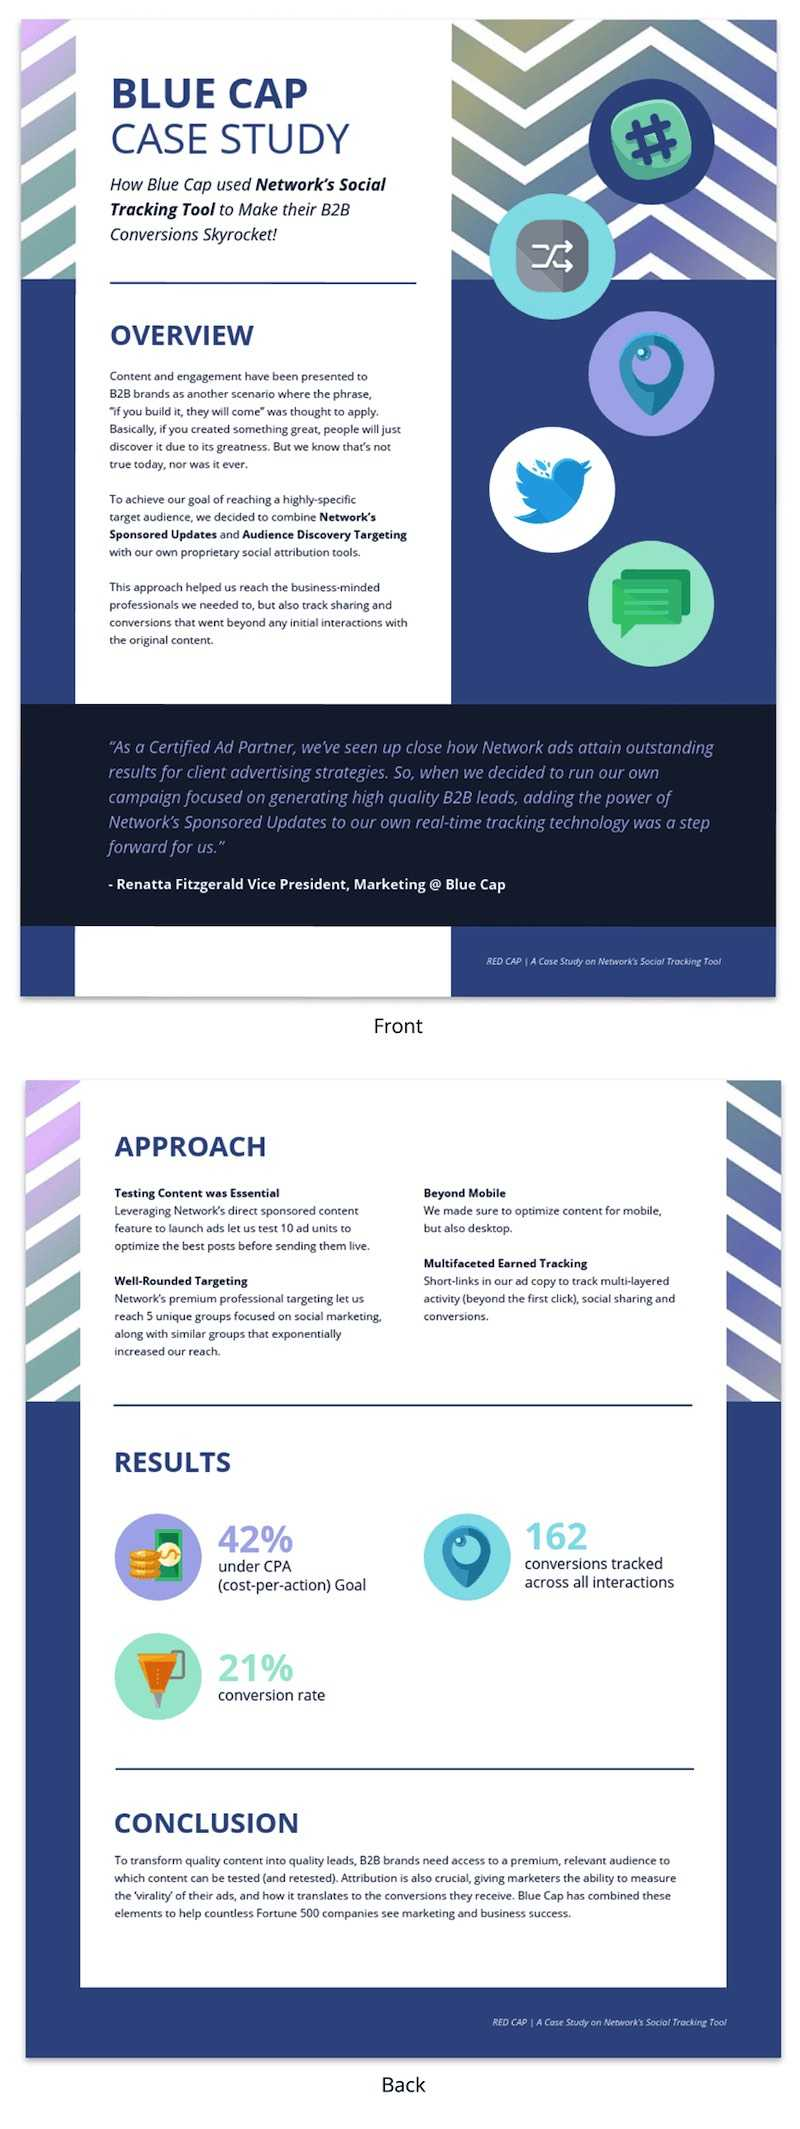 30+ Business Report Templates Every Business Needs - Venngage Throughout Company Progress Report Template